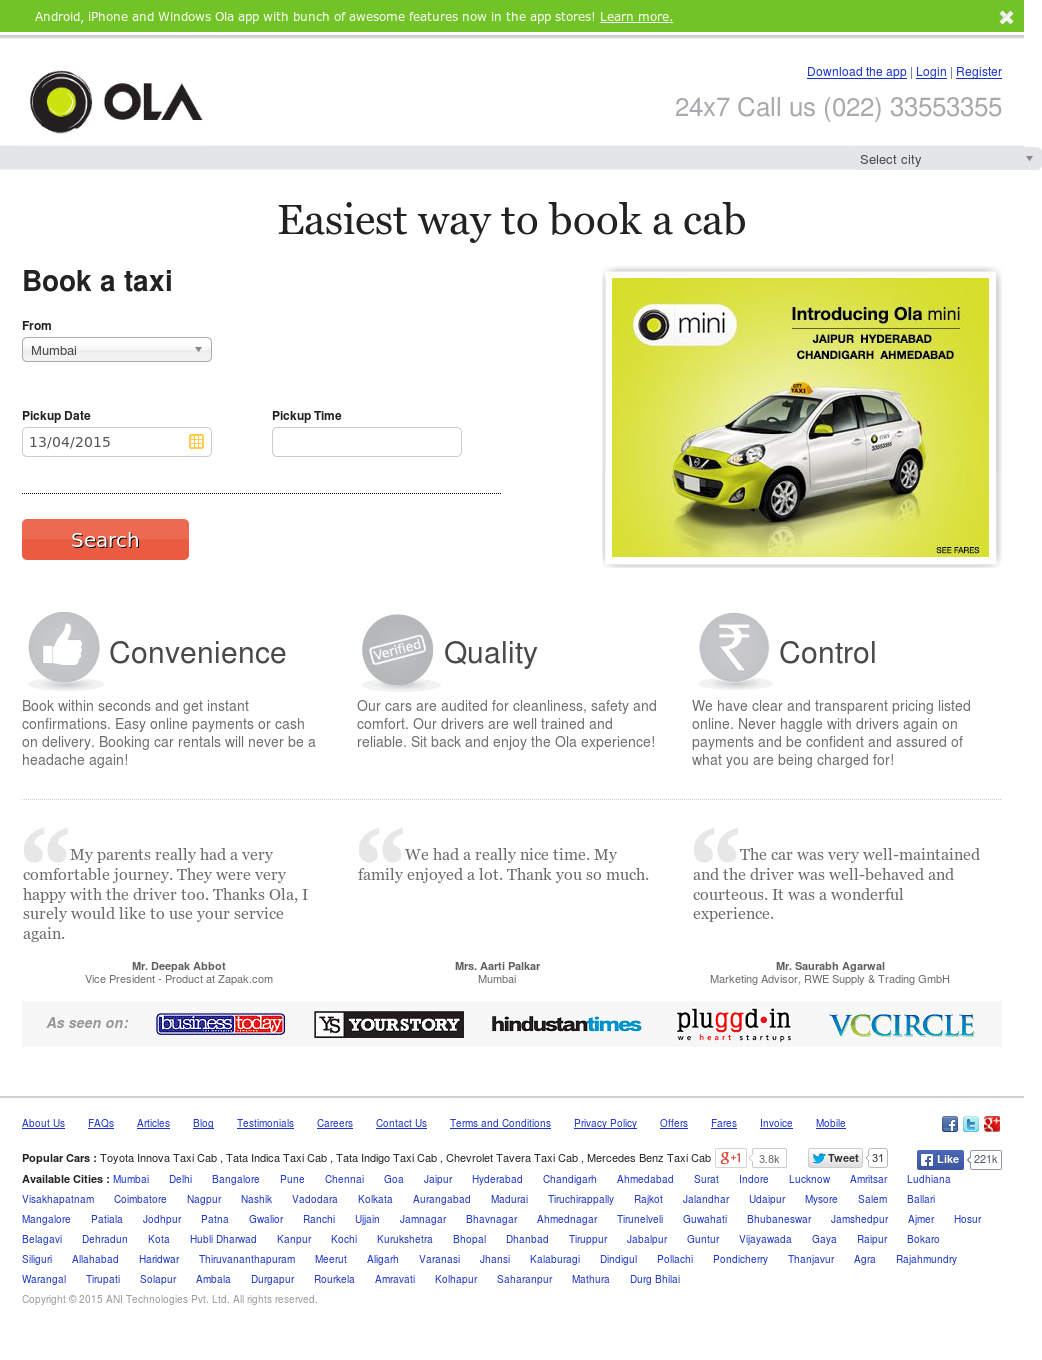 ola rental fare